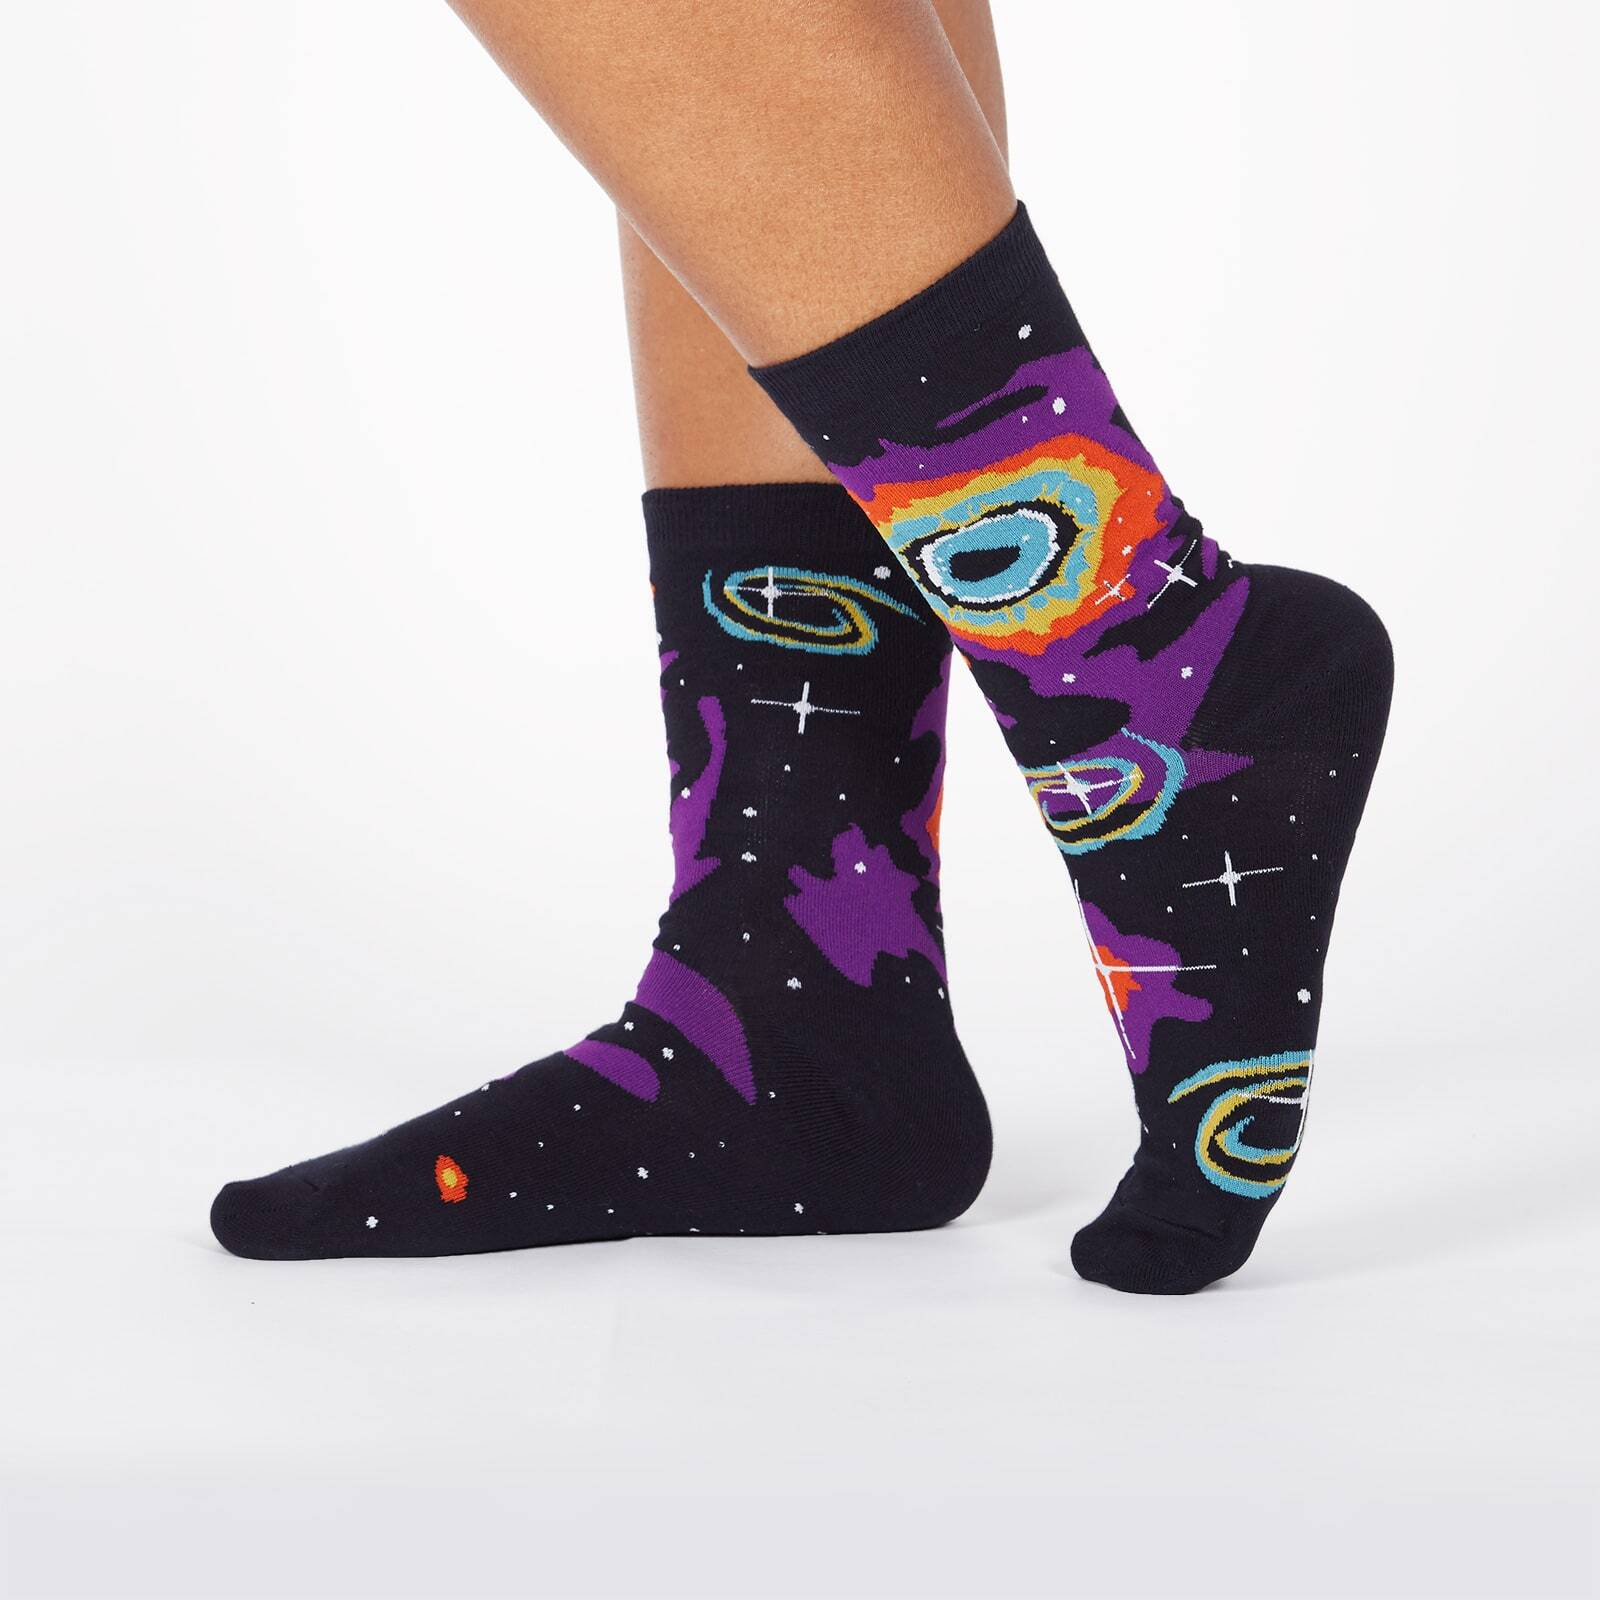 model wearing Helix Nebula - 50th Anniversary Moon Landing Outer Space Nebula Colorful Crew Socks Black - Women's